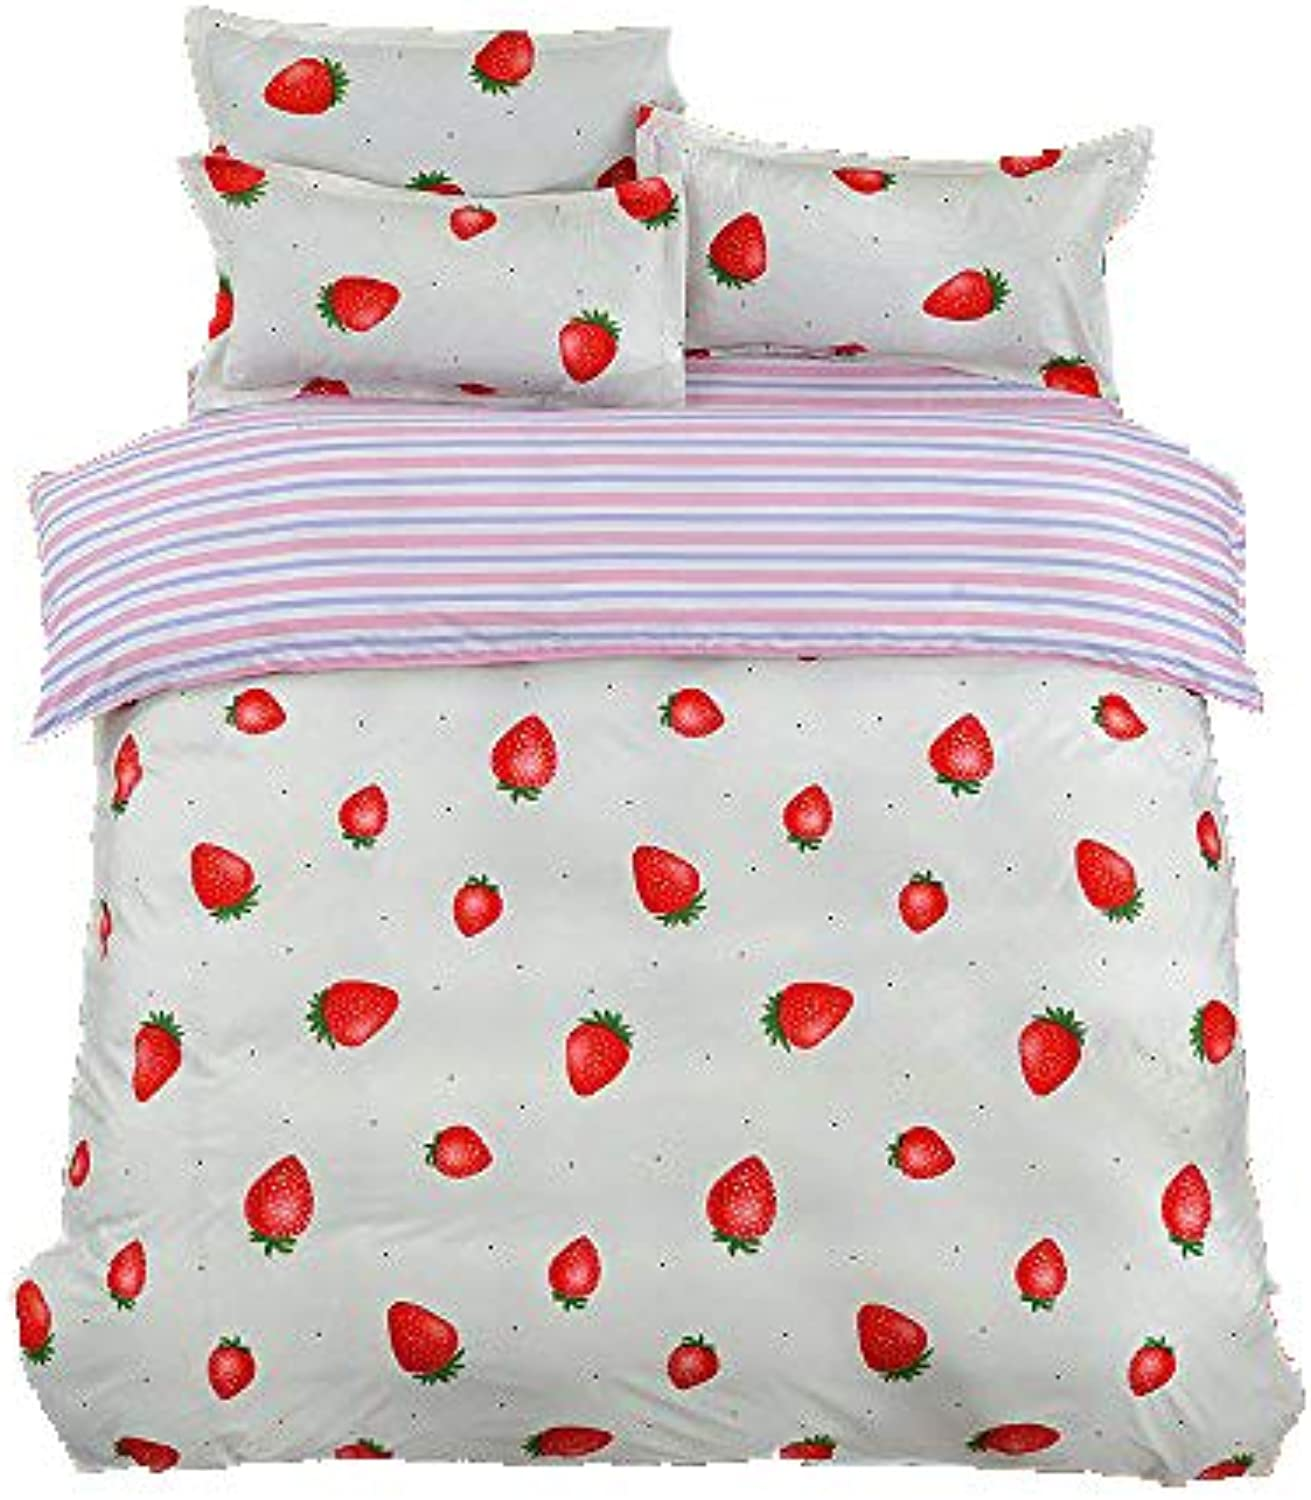 4pcs Kids Beddingset Duvet Cover Set Duvet Cover Bedsheet Pillowcase Twin Full Queen HM Spotted Dog Design (Queen, Strawberry)